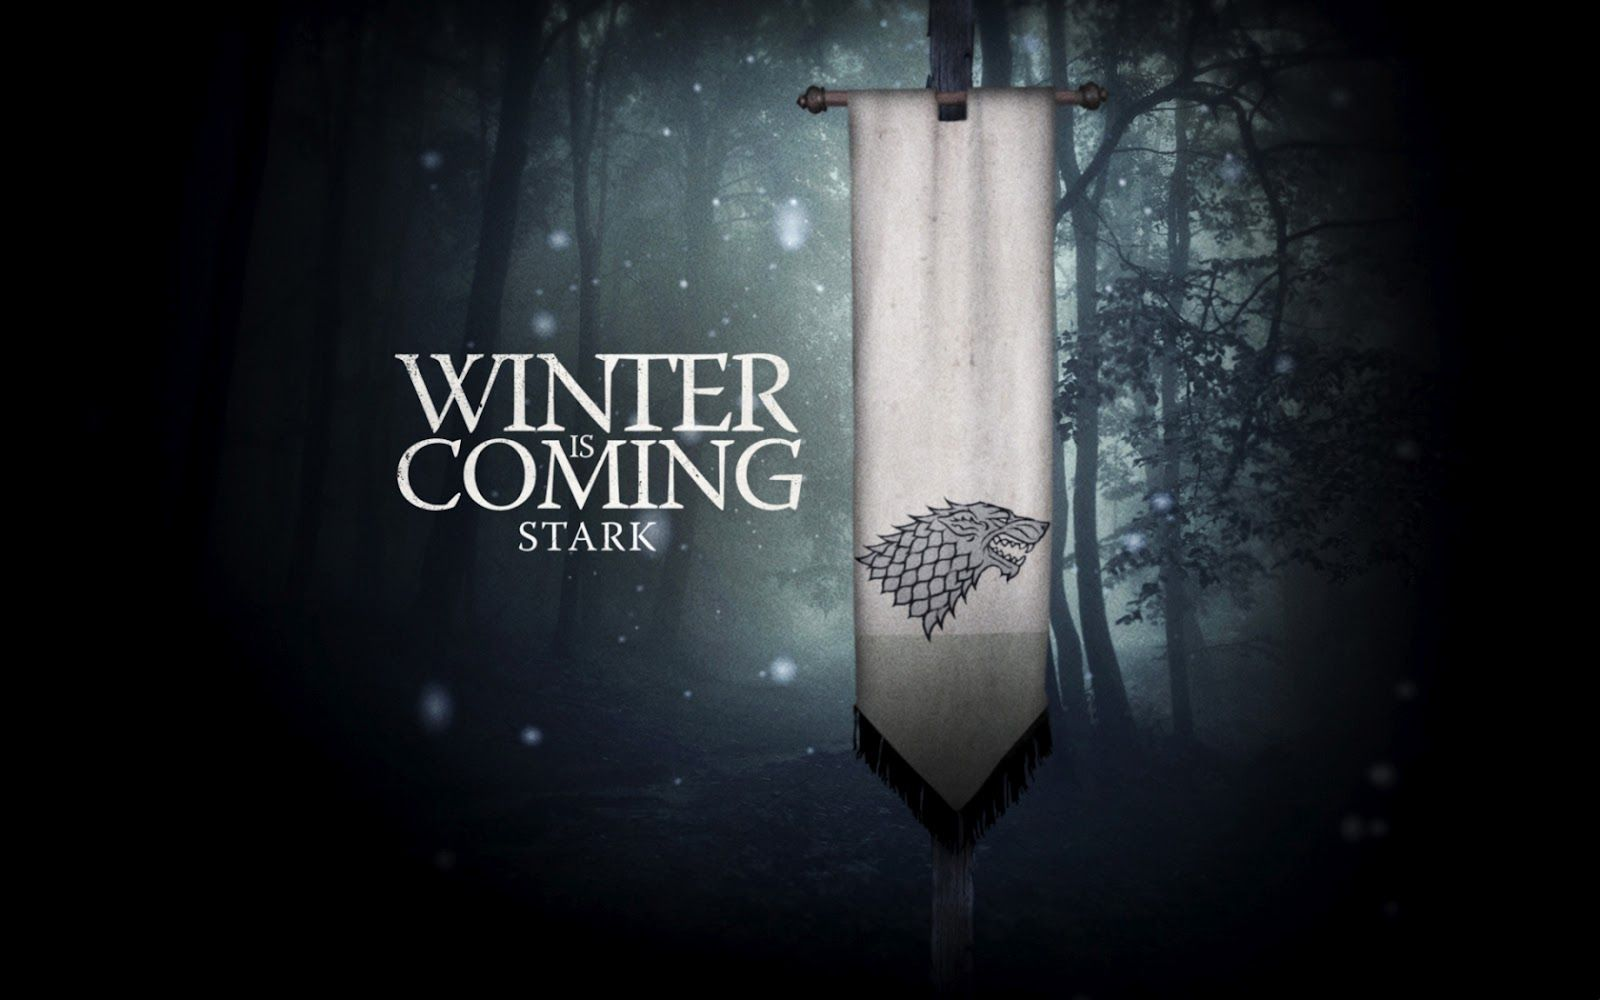 House Of Stark Game Of Thrones Poster Hbo Game Of Thrones Game Of Thrones Winter